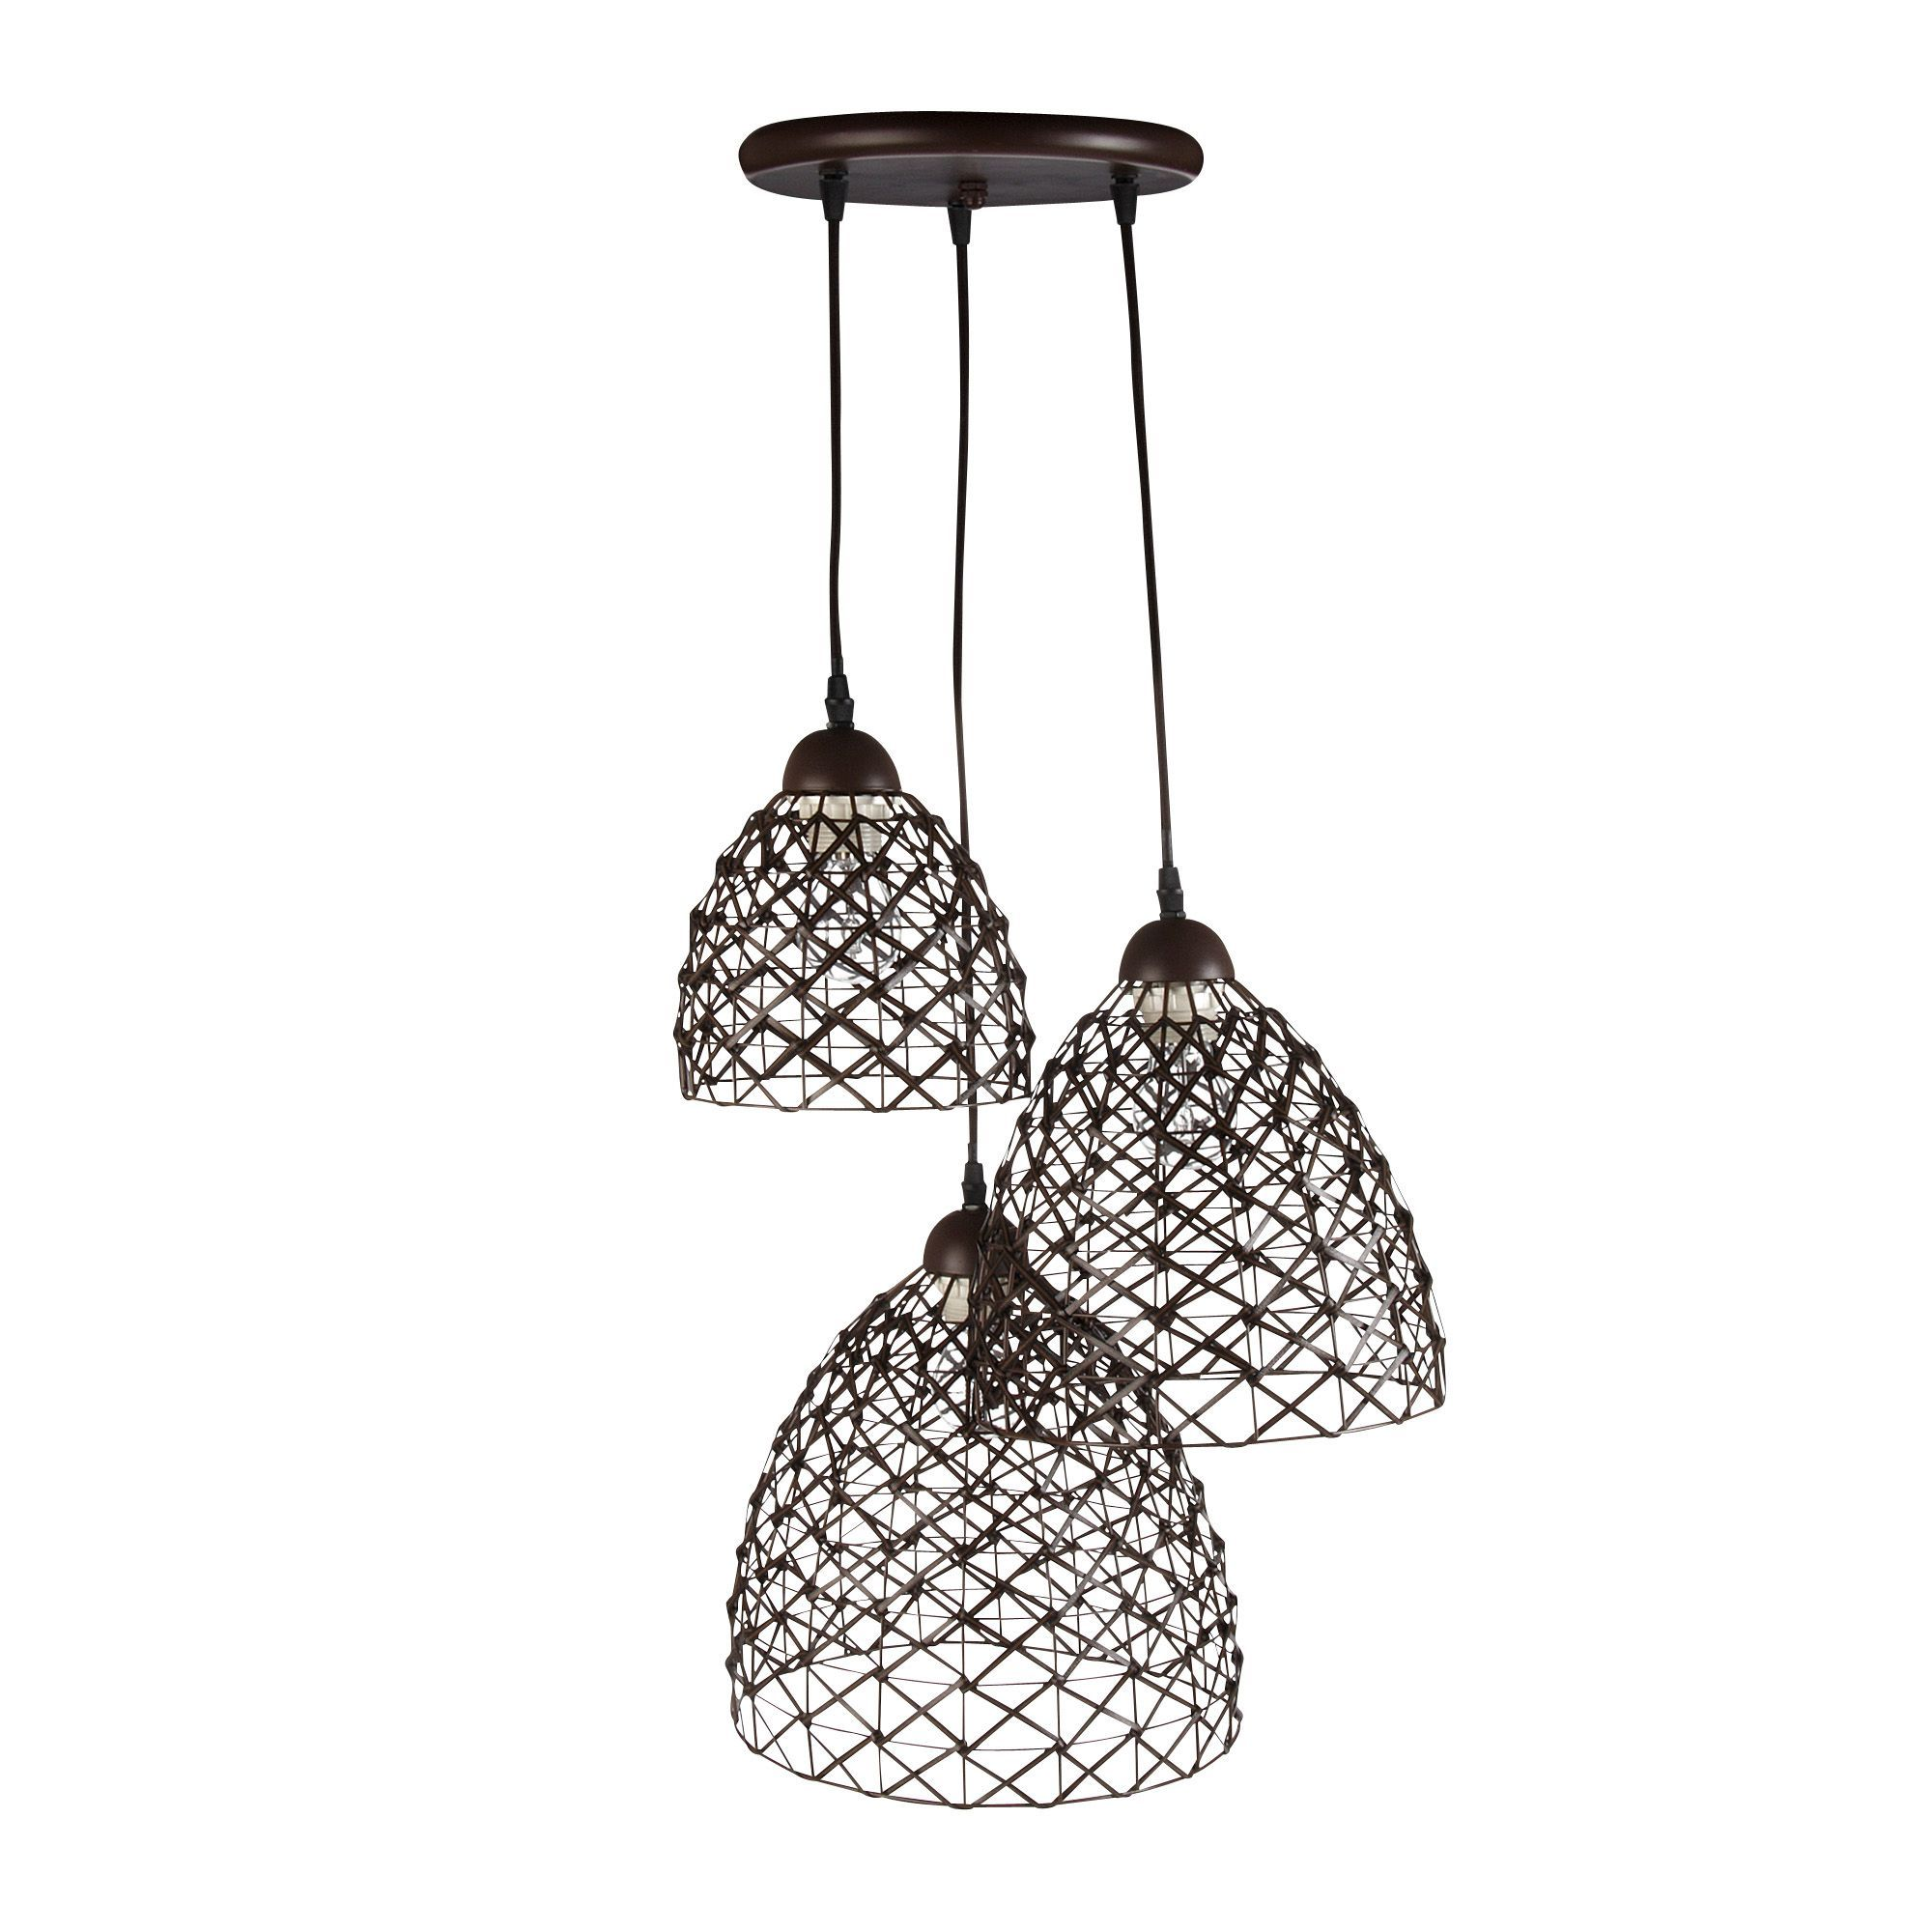 Suspension 3 lumi res chocolat chocolat naty les for Suspension luminaire noir et or